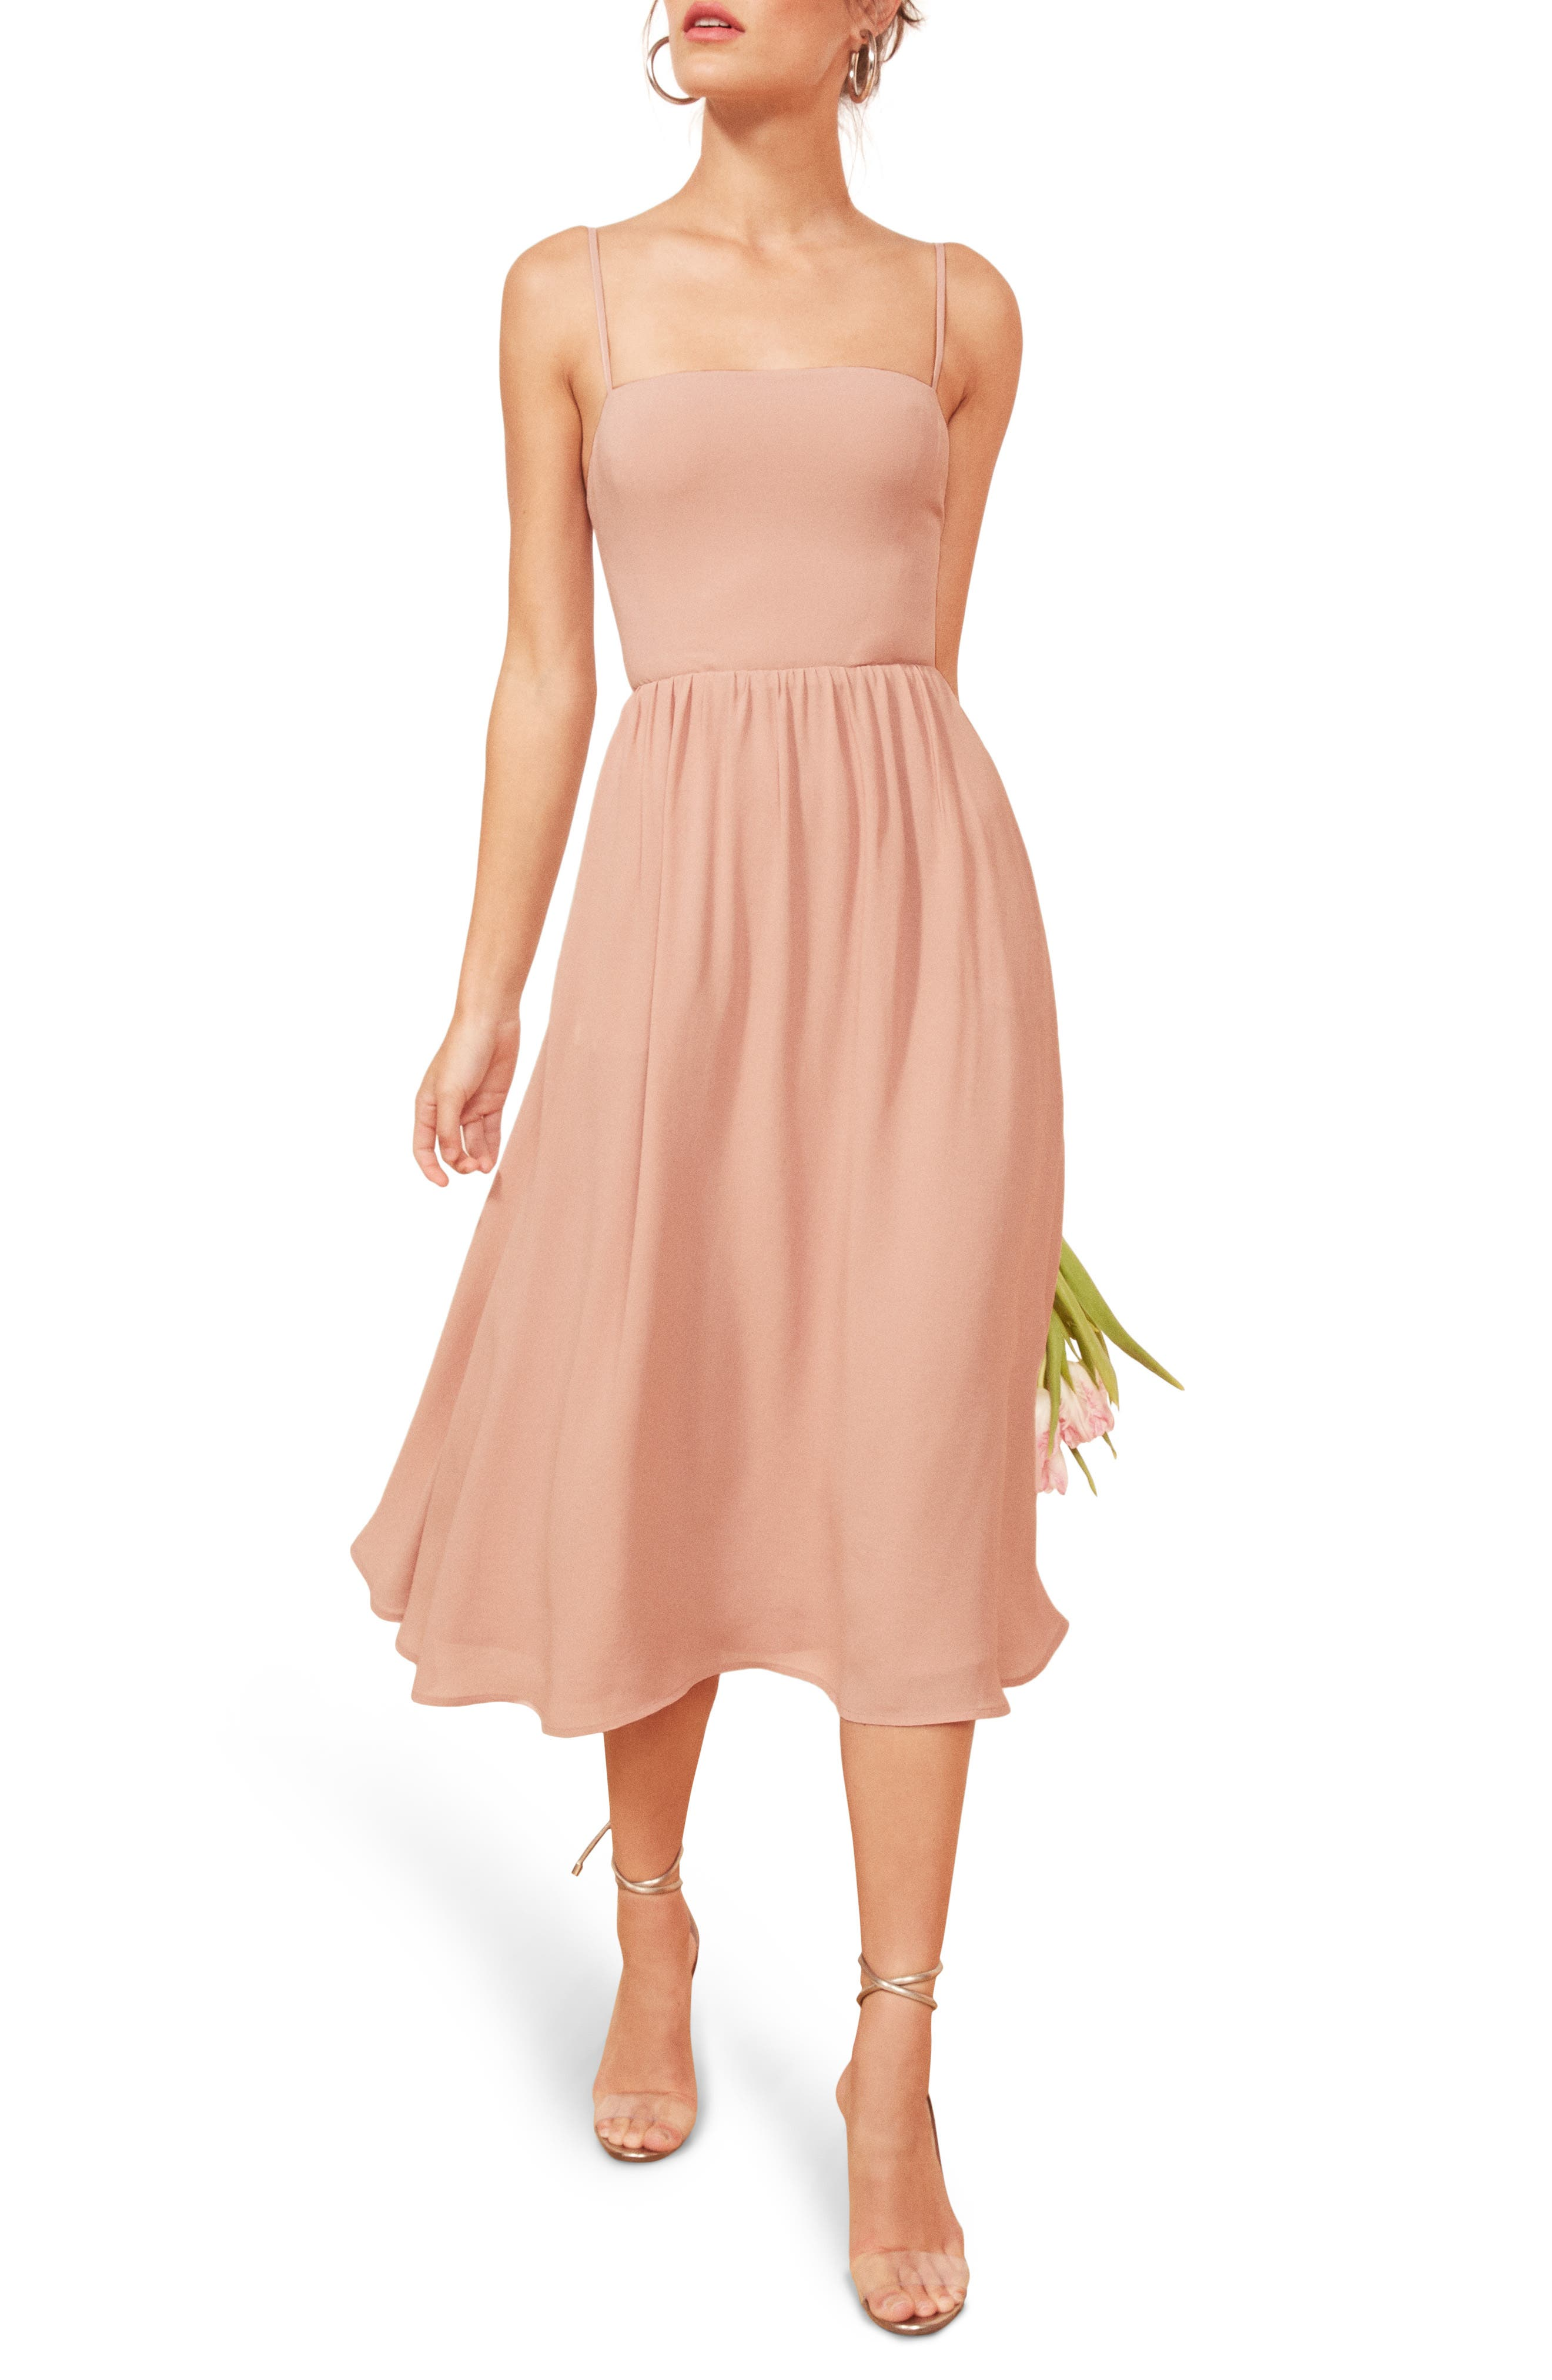 REFORMATION Rosehip Fit & Flare Dress, Main, color, BLUSH